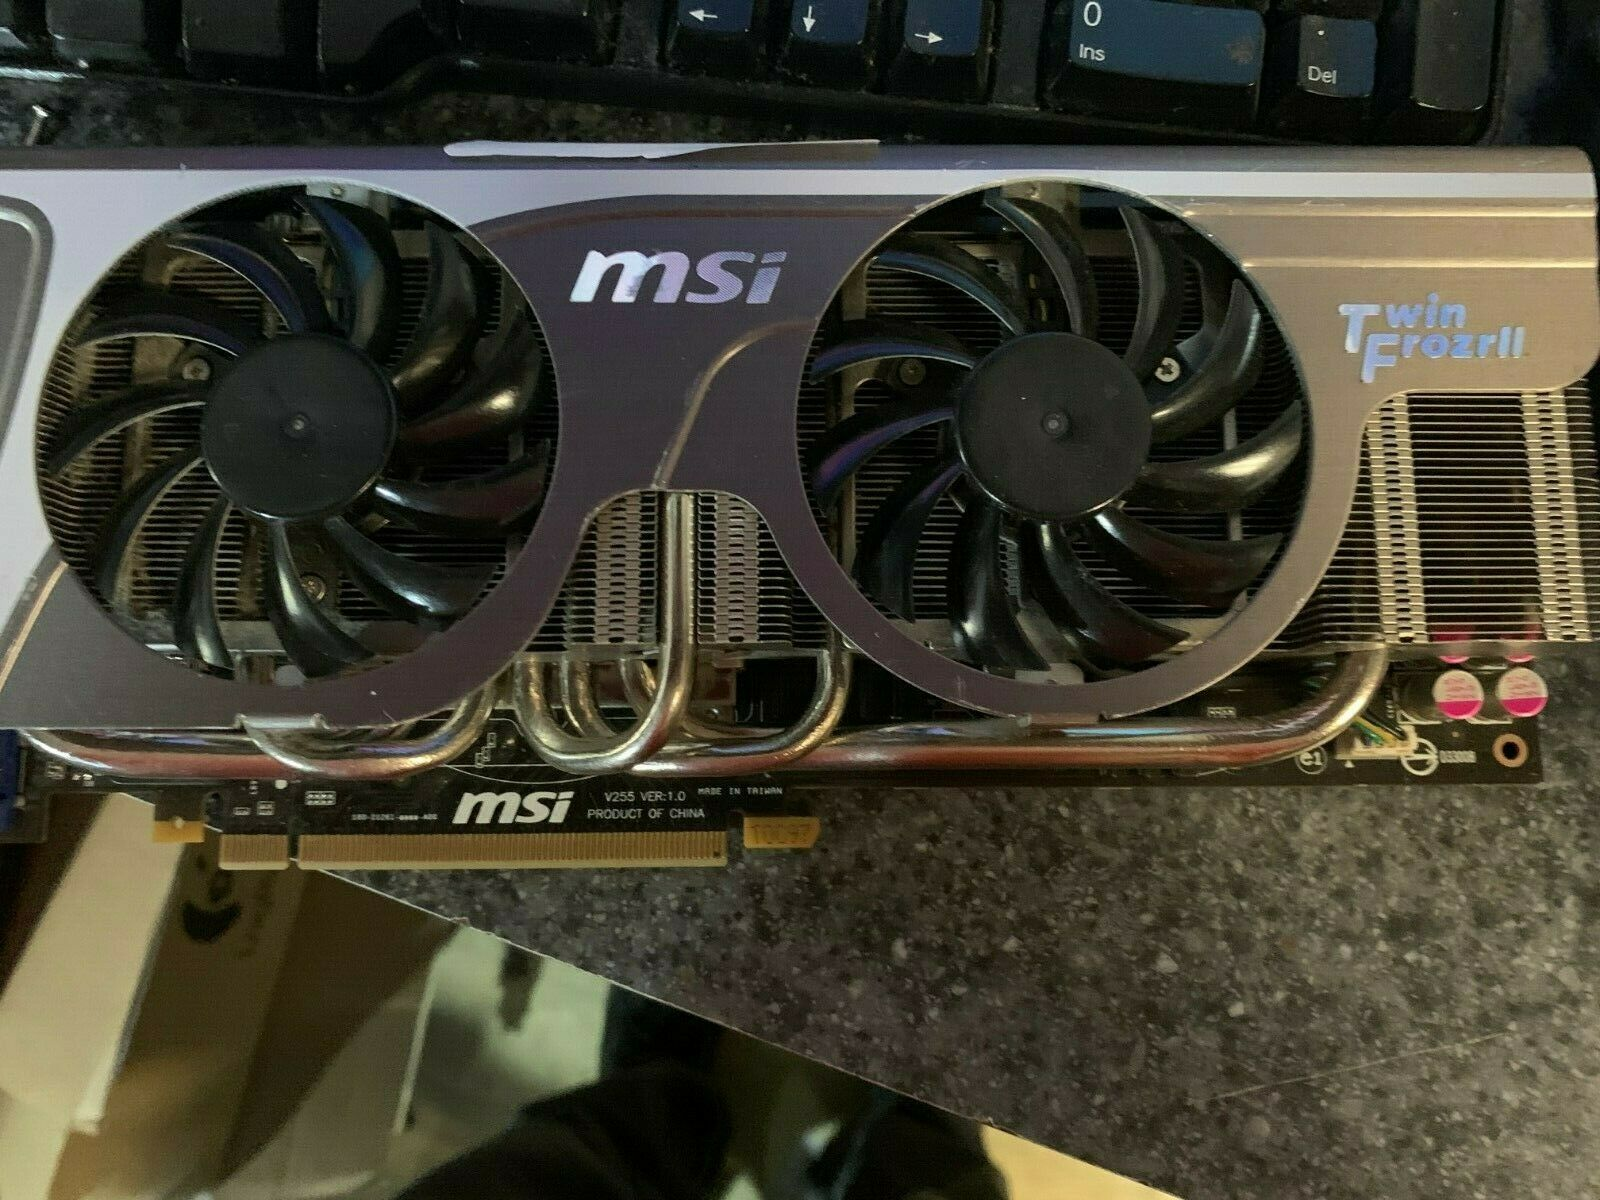 MSI GTX 580 1536 MB 800 MHZ Twin Frozrll Video Card